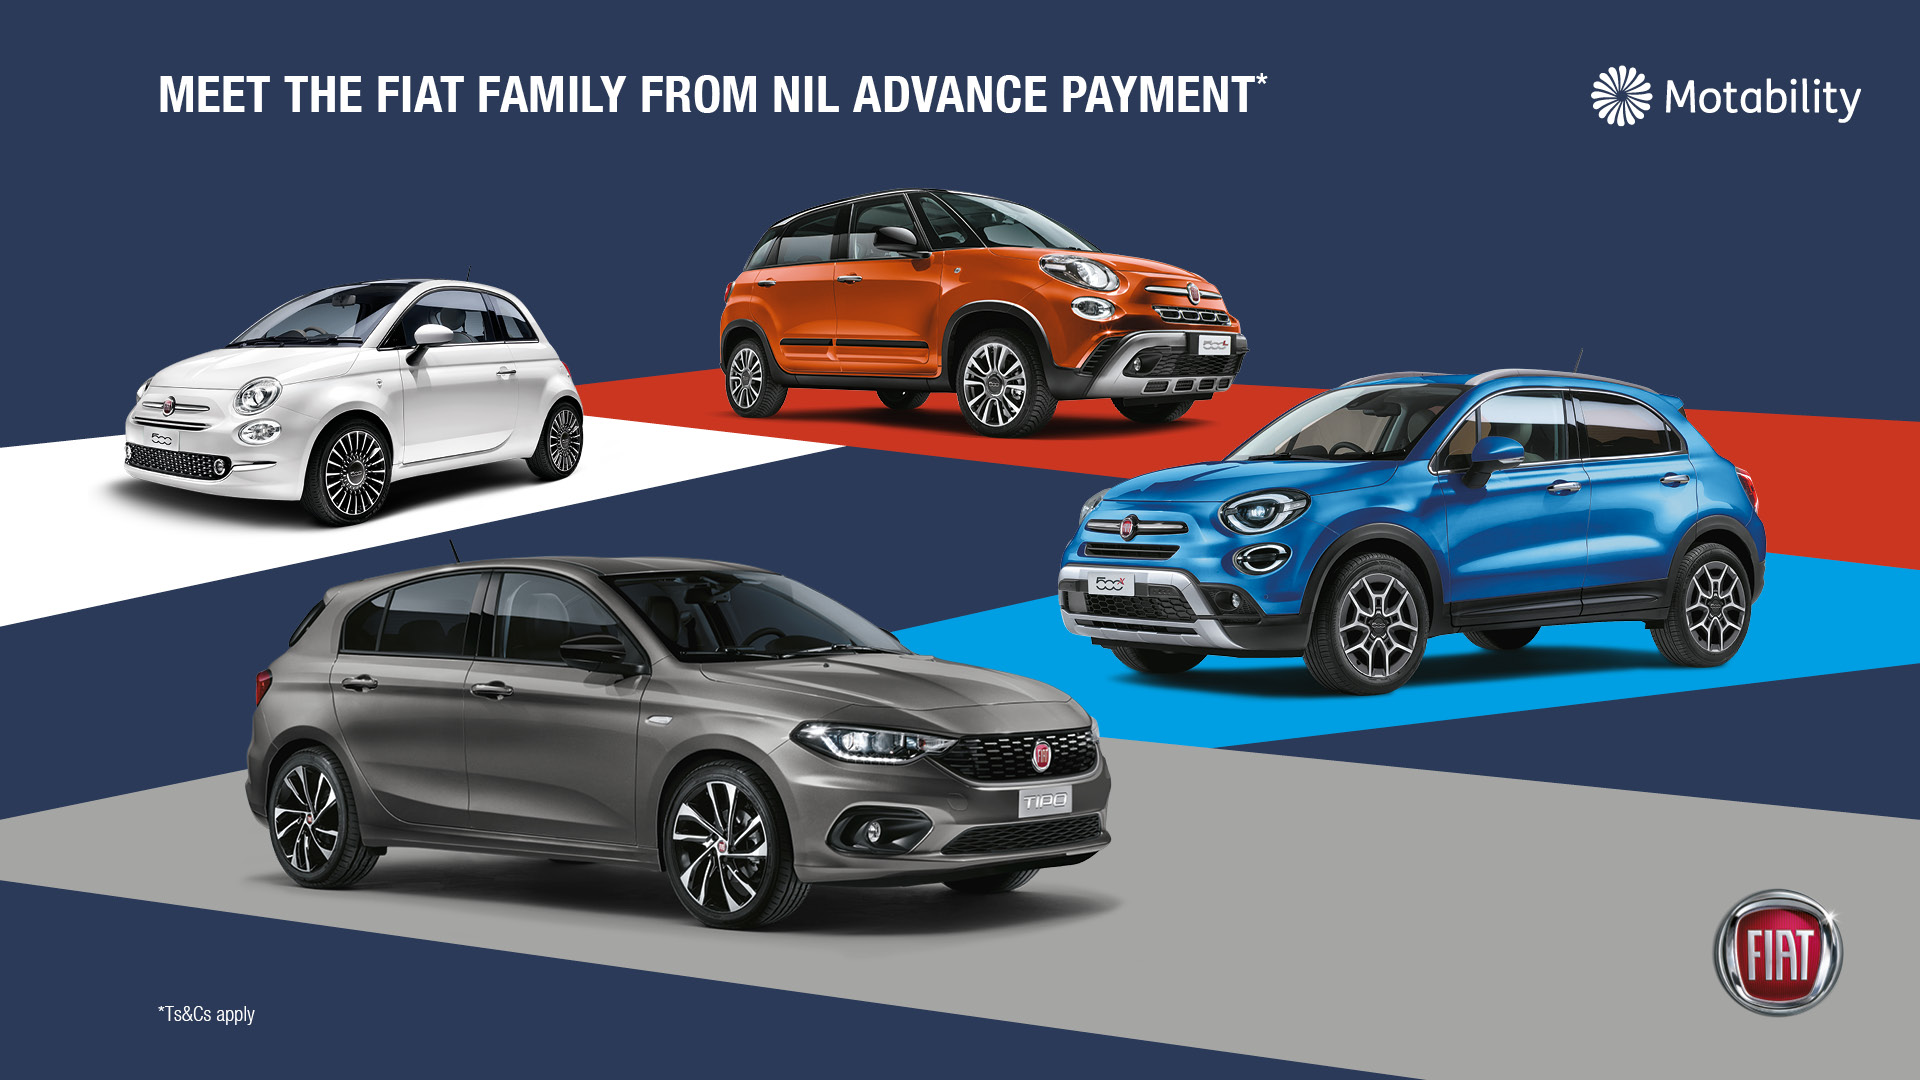 37268-FIAT-Family-Motability_Static-Banner-1920x1080